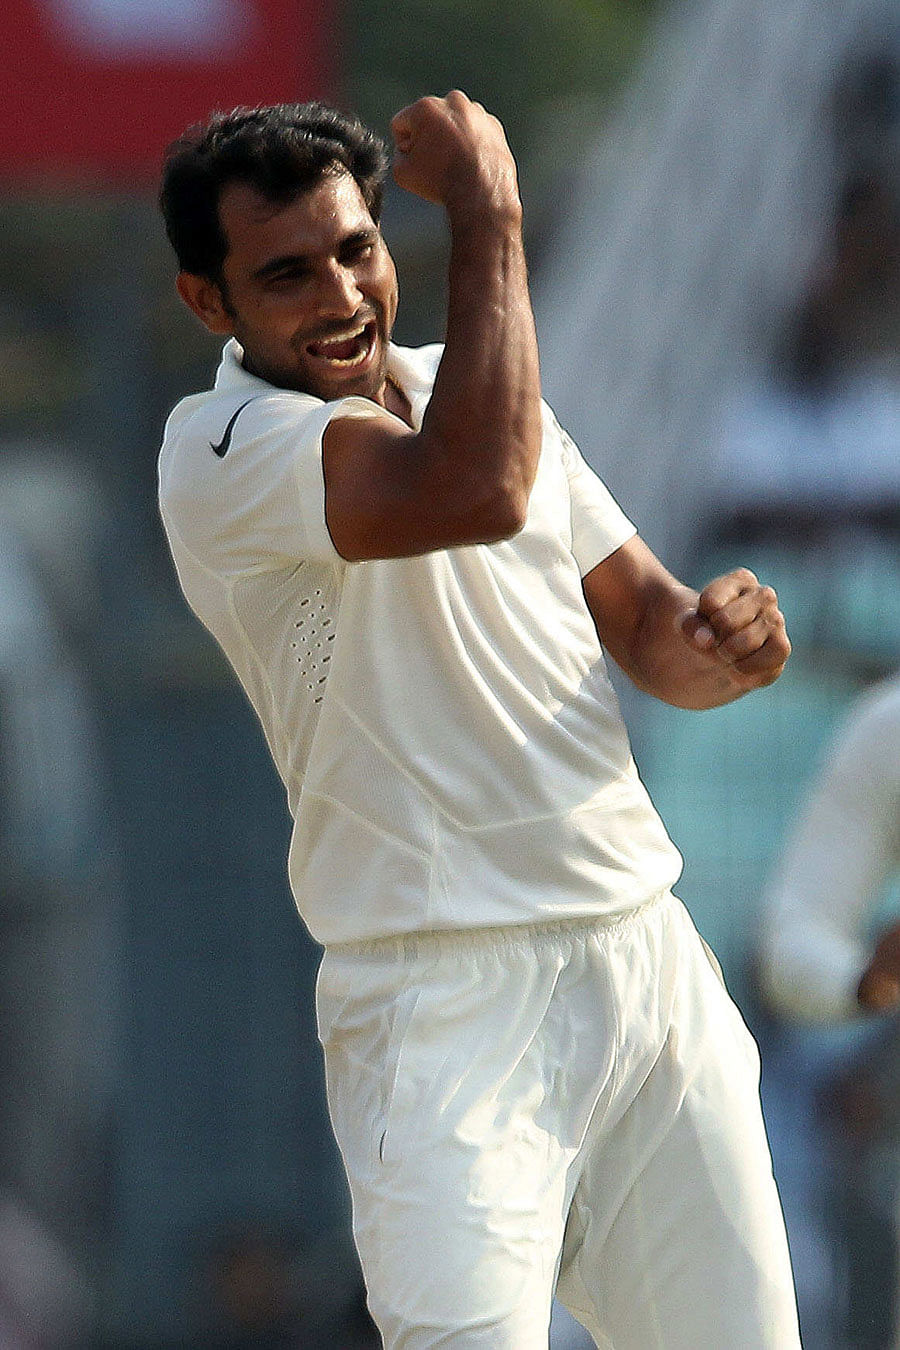 Mohammed Shami - the future of Indian bowling?